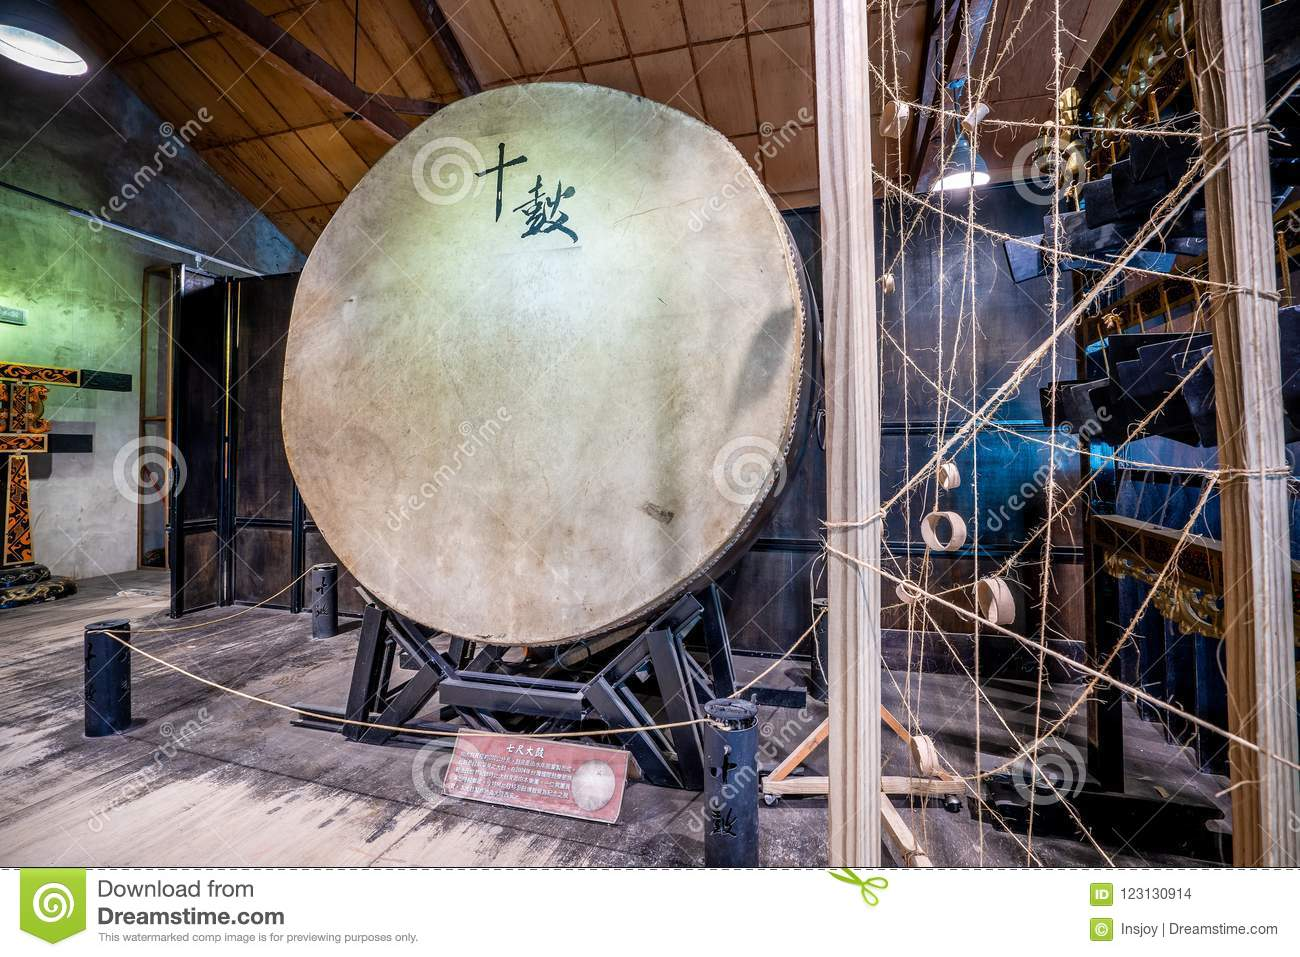 Ten drum culture area in Tainan which is reconstruction